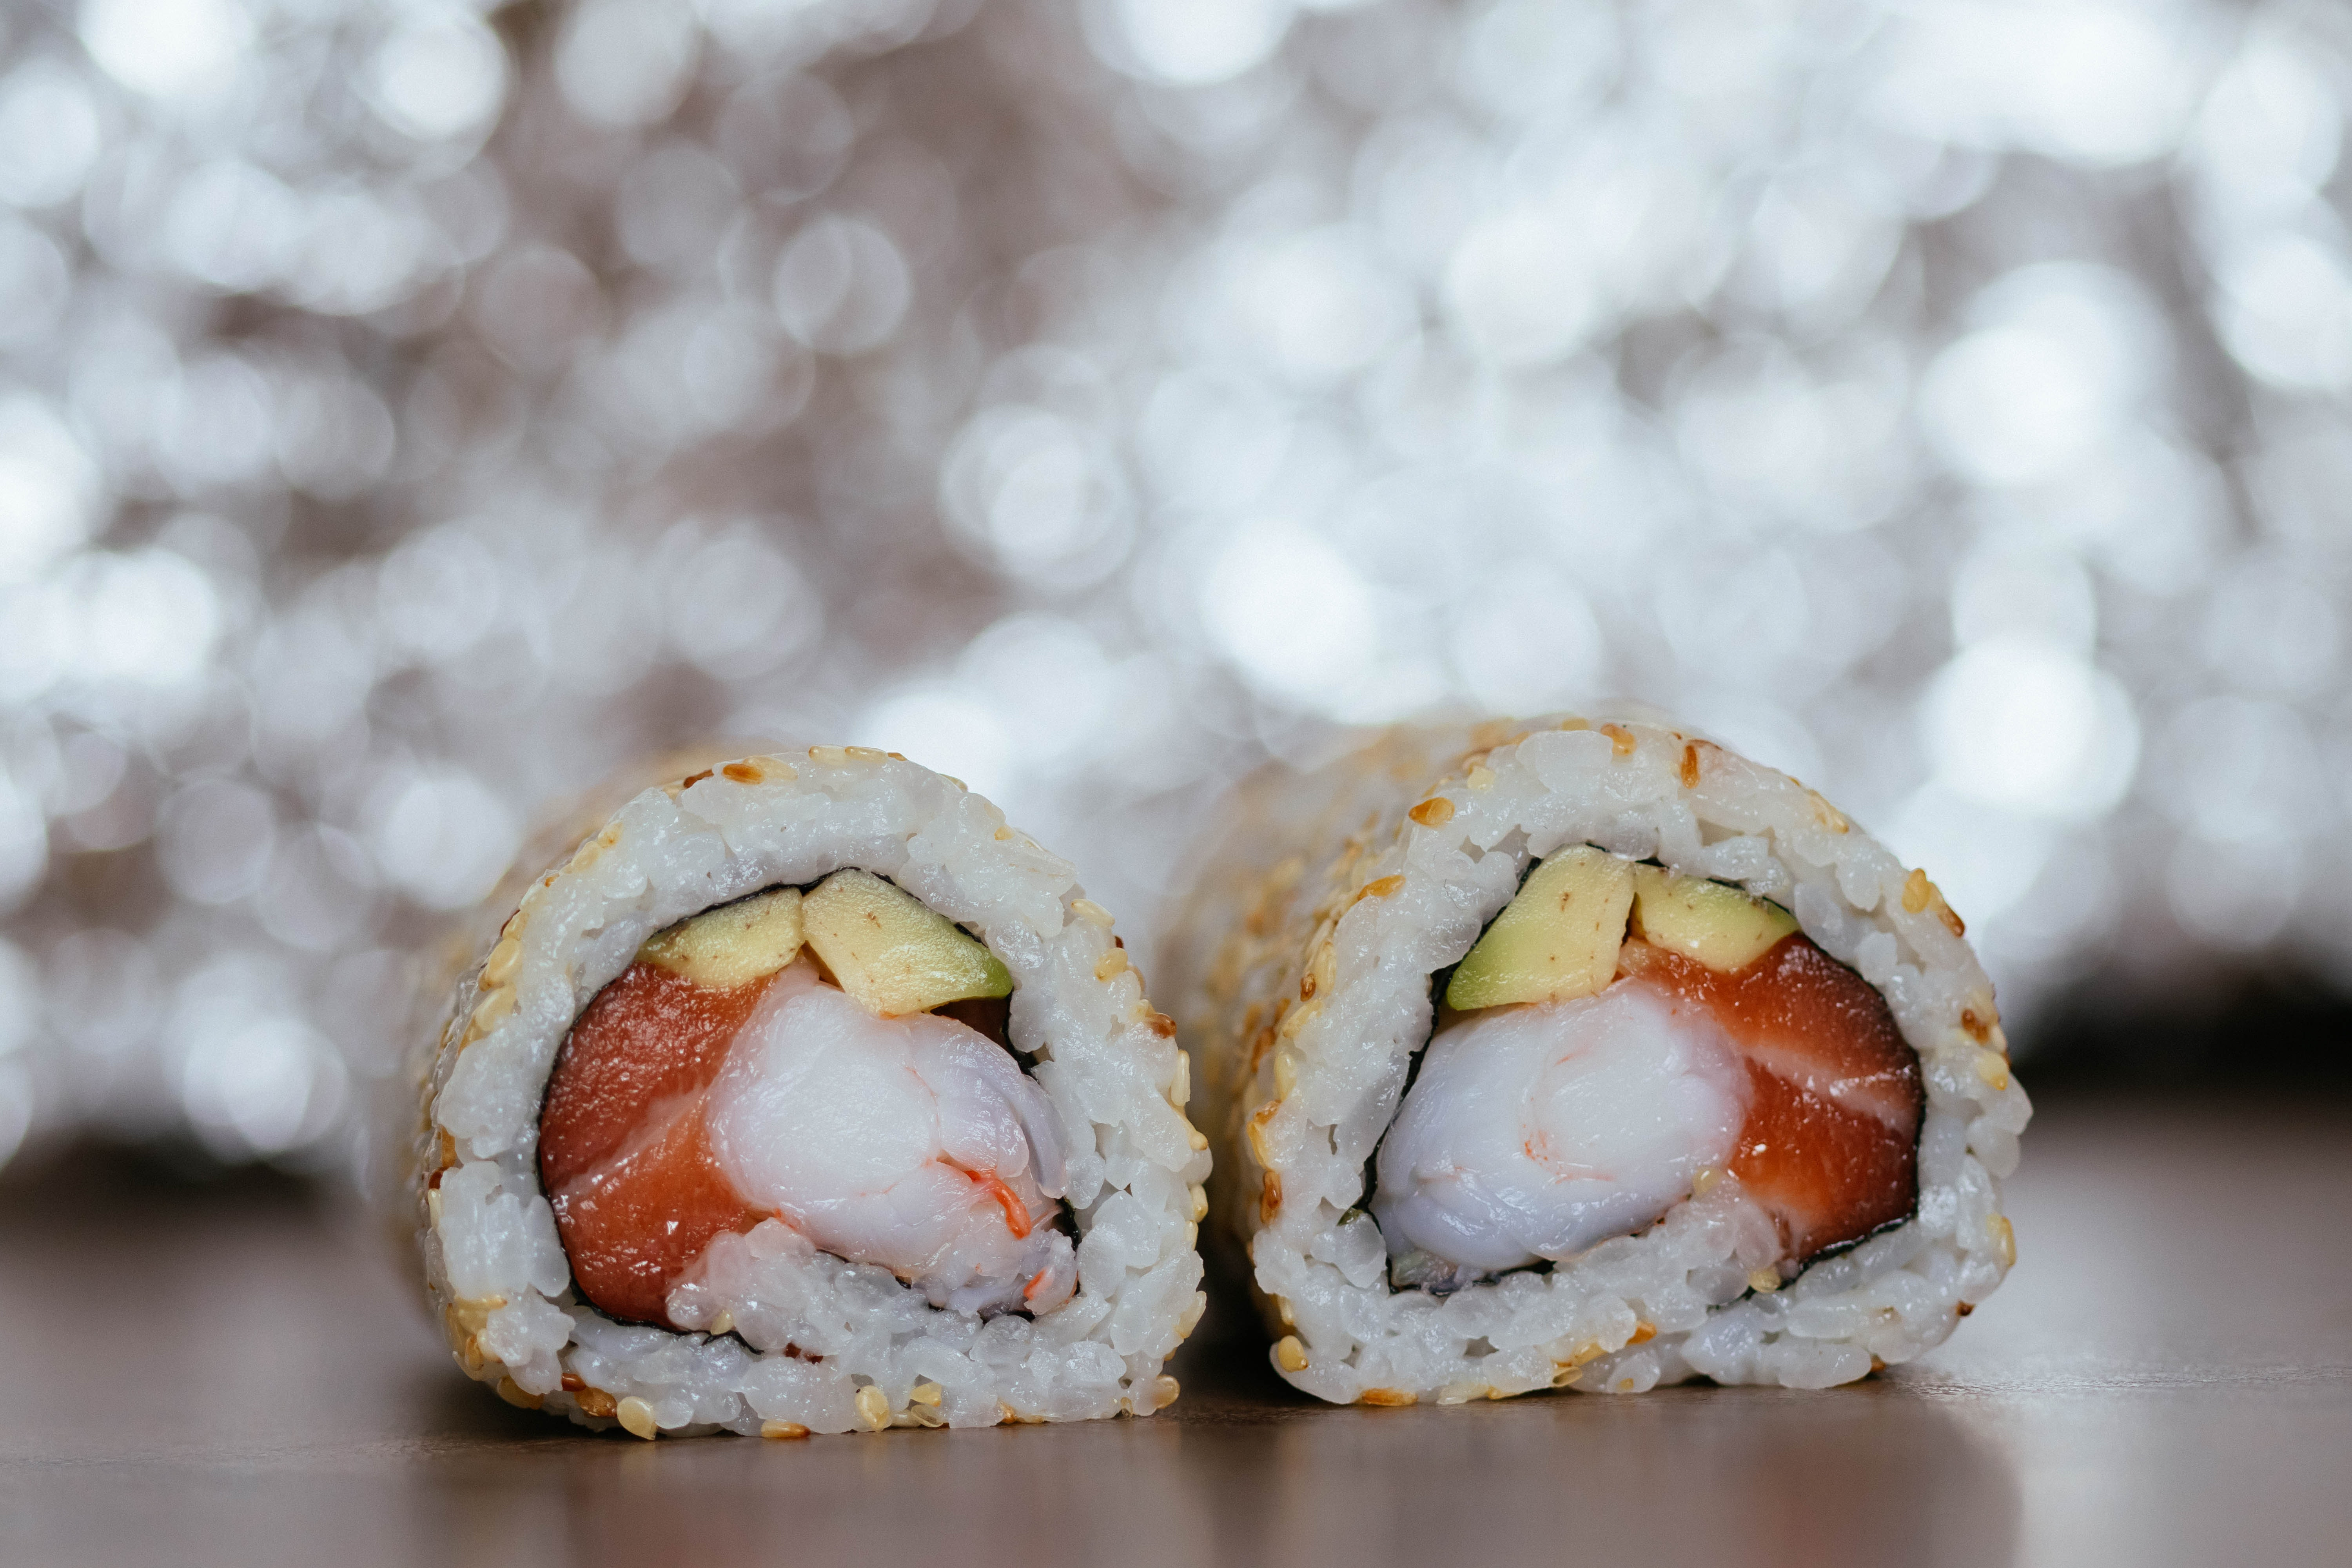 Focus photography of cooked sushi on brown wooden surface free free download forumfinder Images